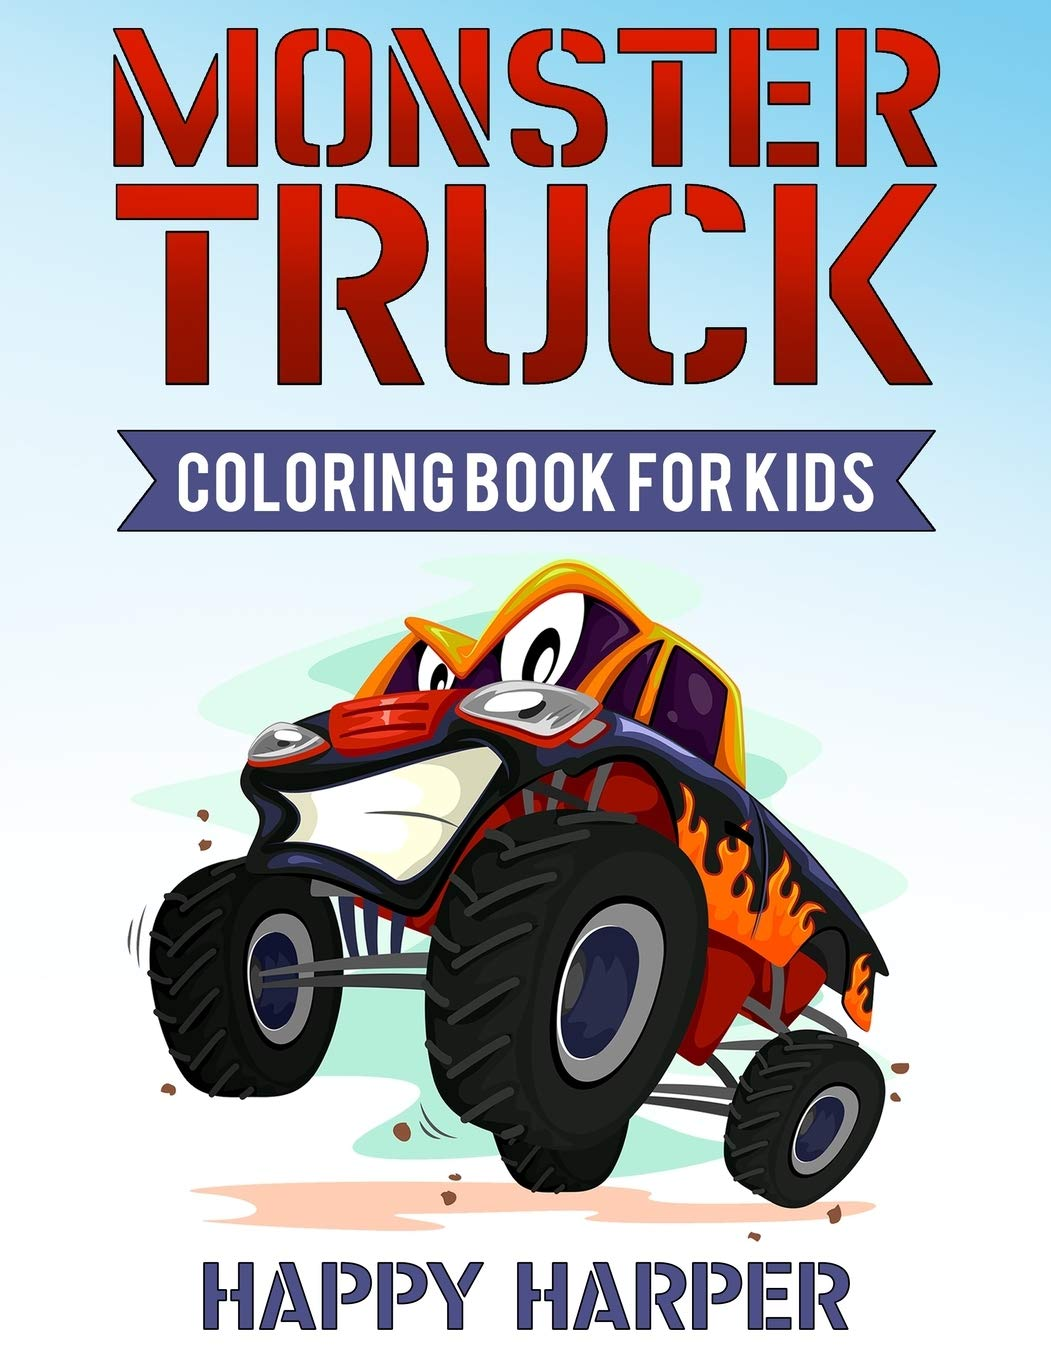 Monster Truck Coloring Book For Kids A Coloring Book For Boys Ages 4 8 Filled With Over 40 Pages Of Monster Trucks Monster Truck Coloring Books For Kids Harper Happy 9781688092334 Amazon Com Books